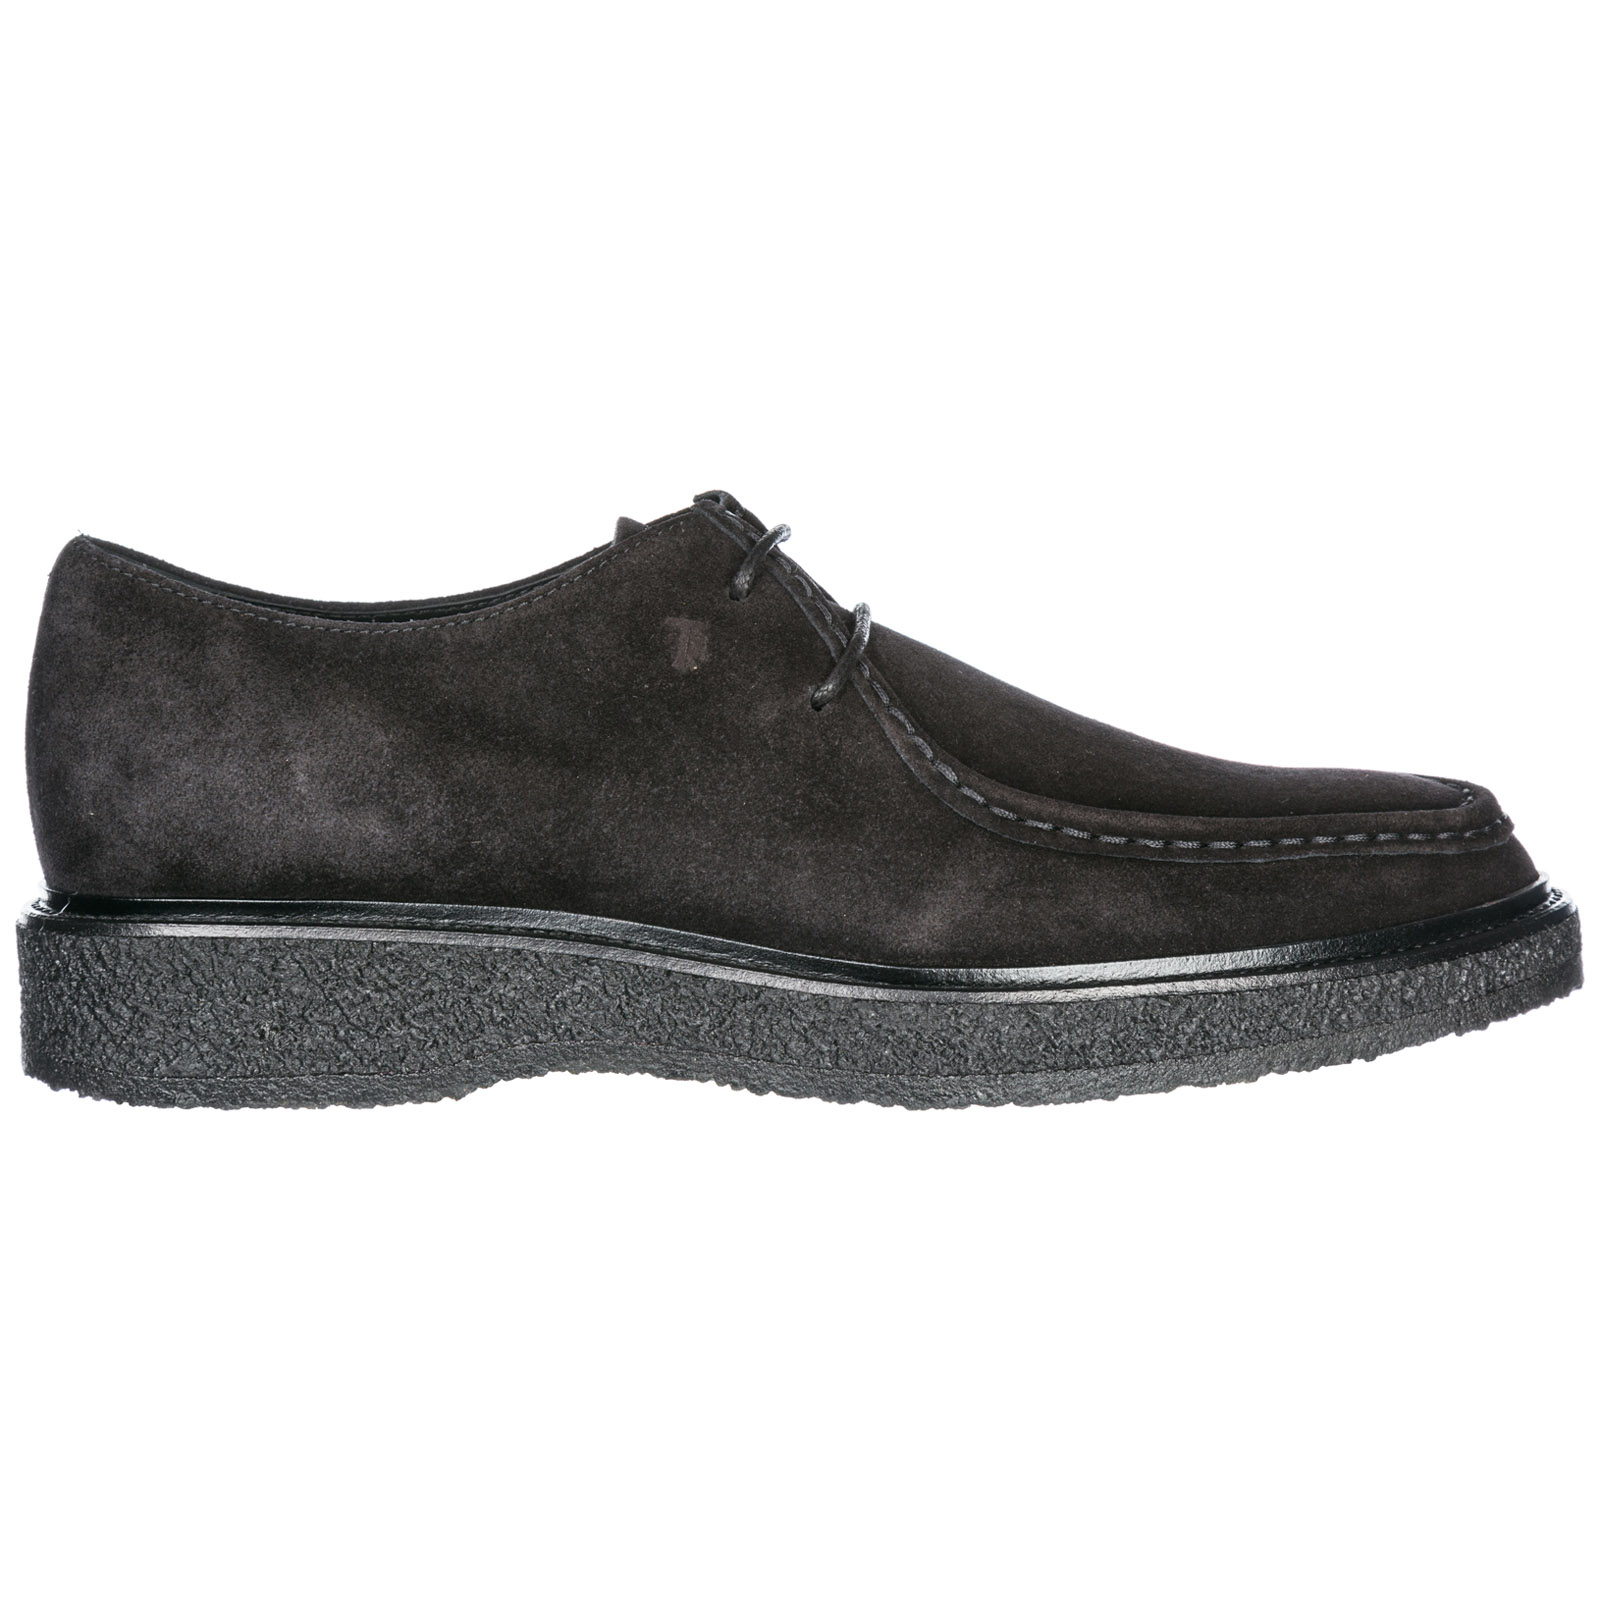 Men's classic suede lace up laced formal shoes